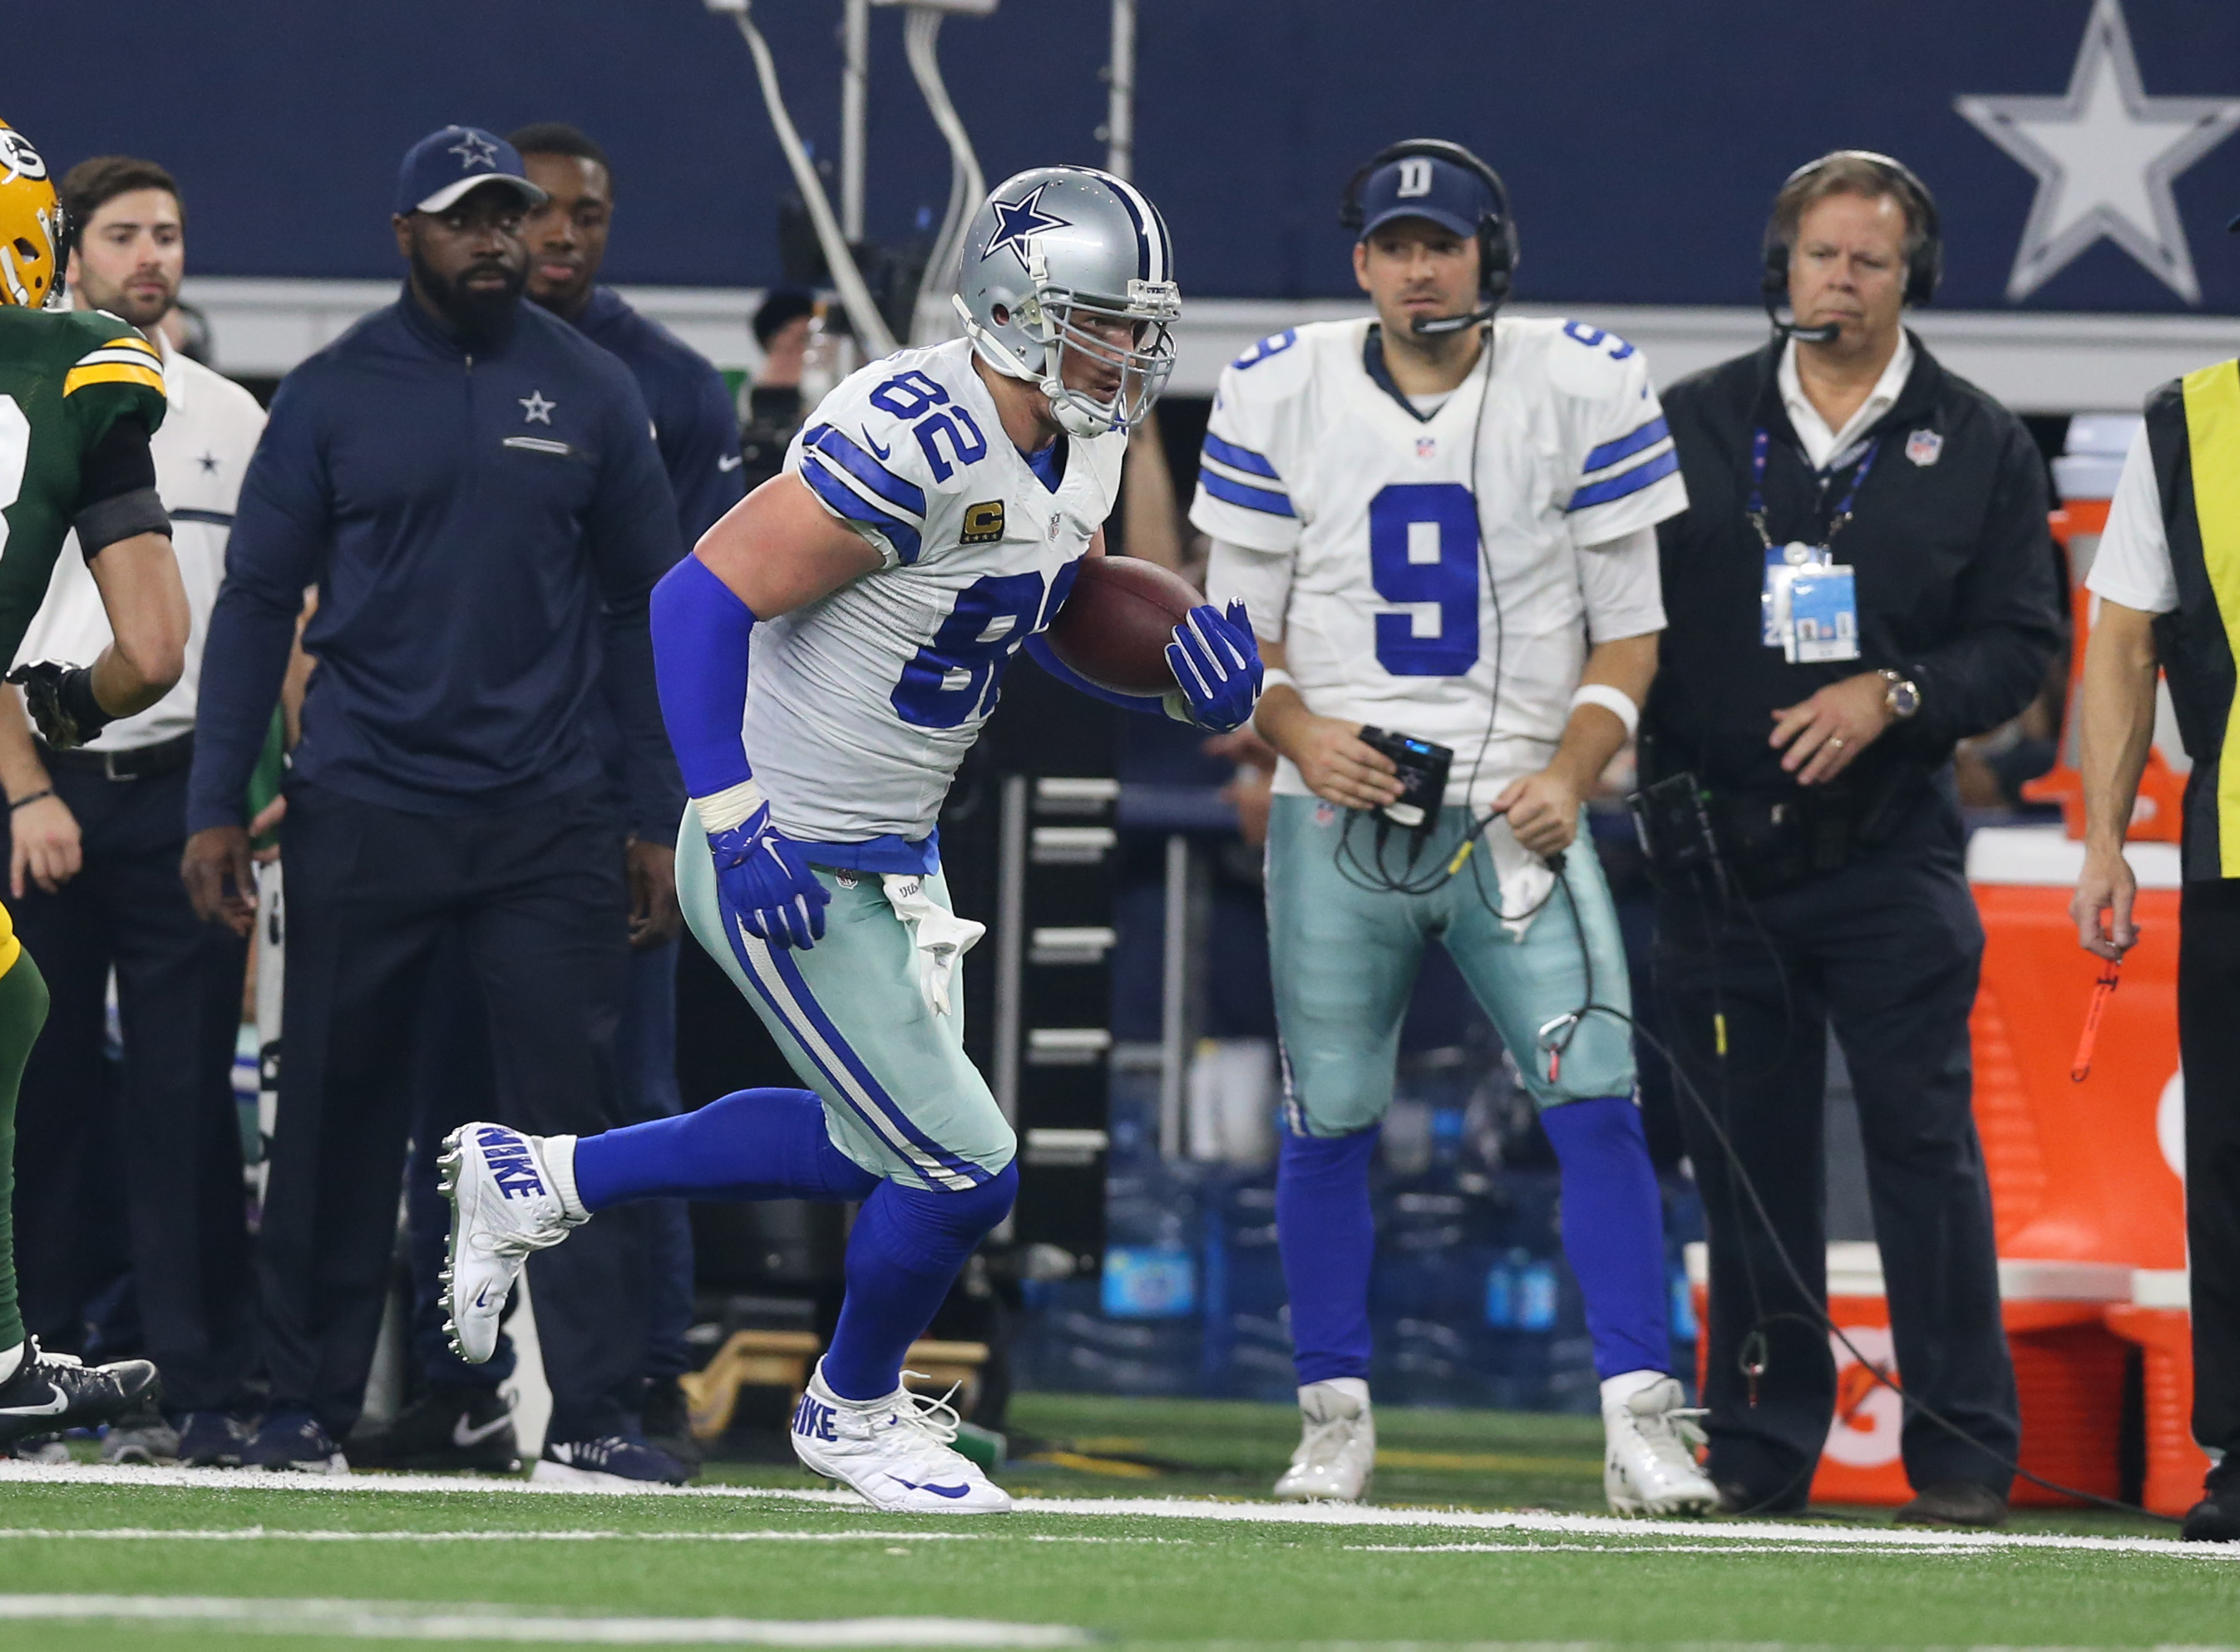 Did the Dallas Cowboys have the wrong commentator return?